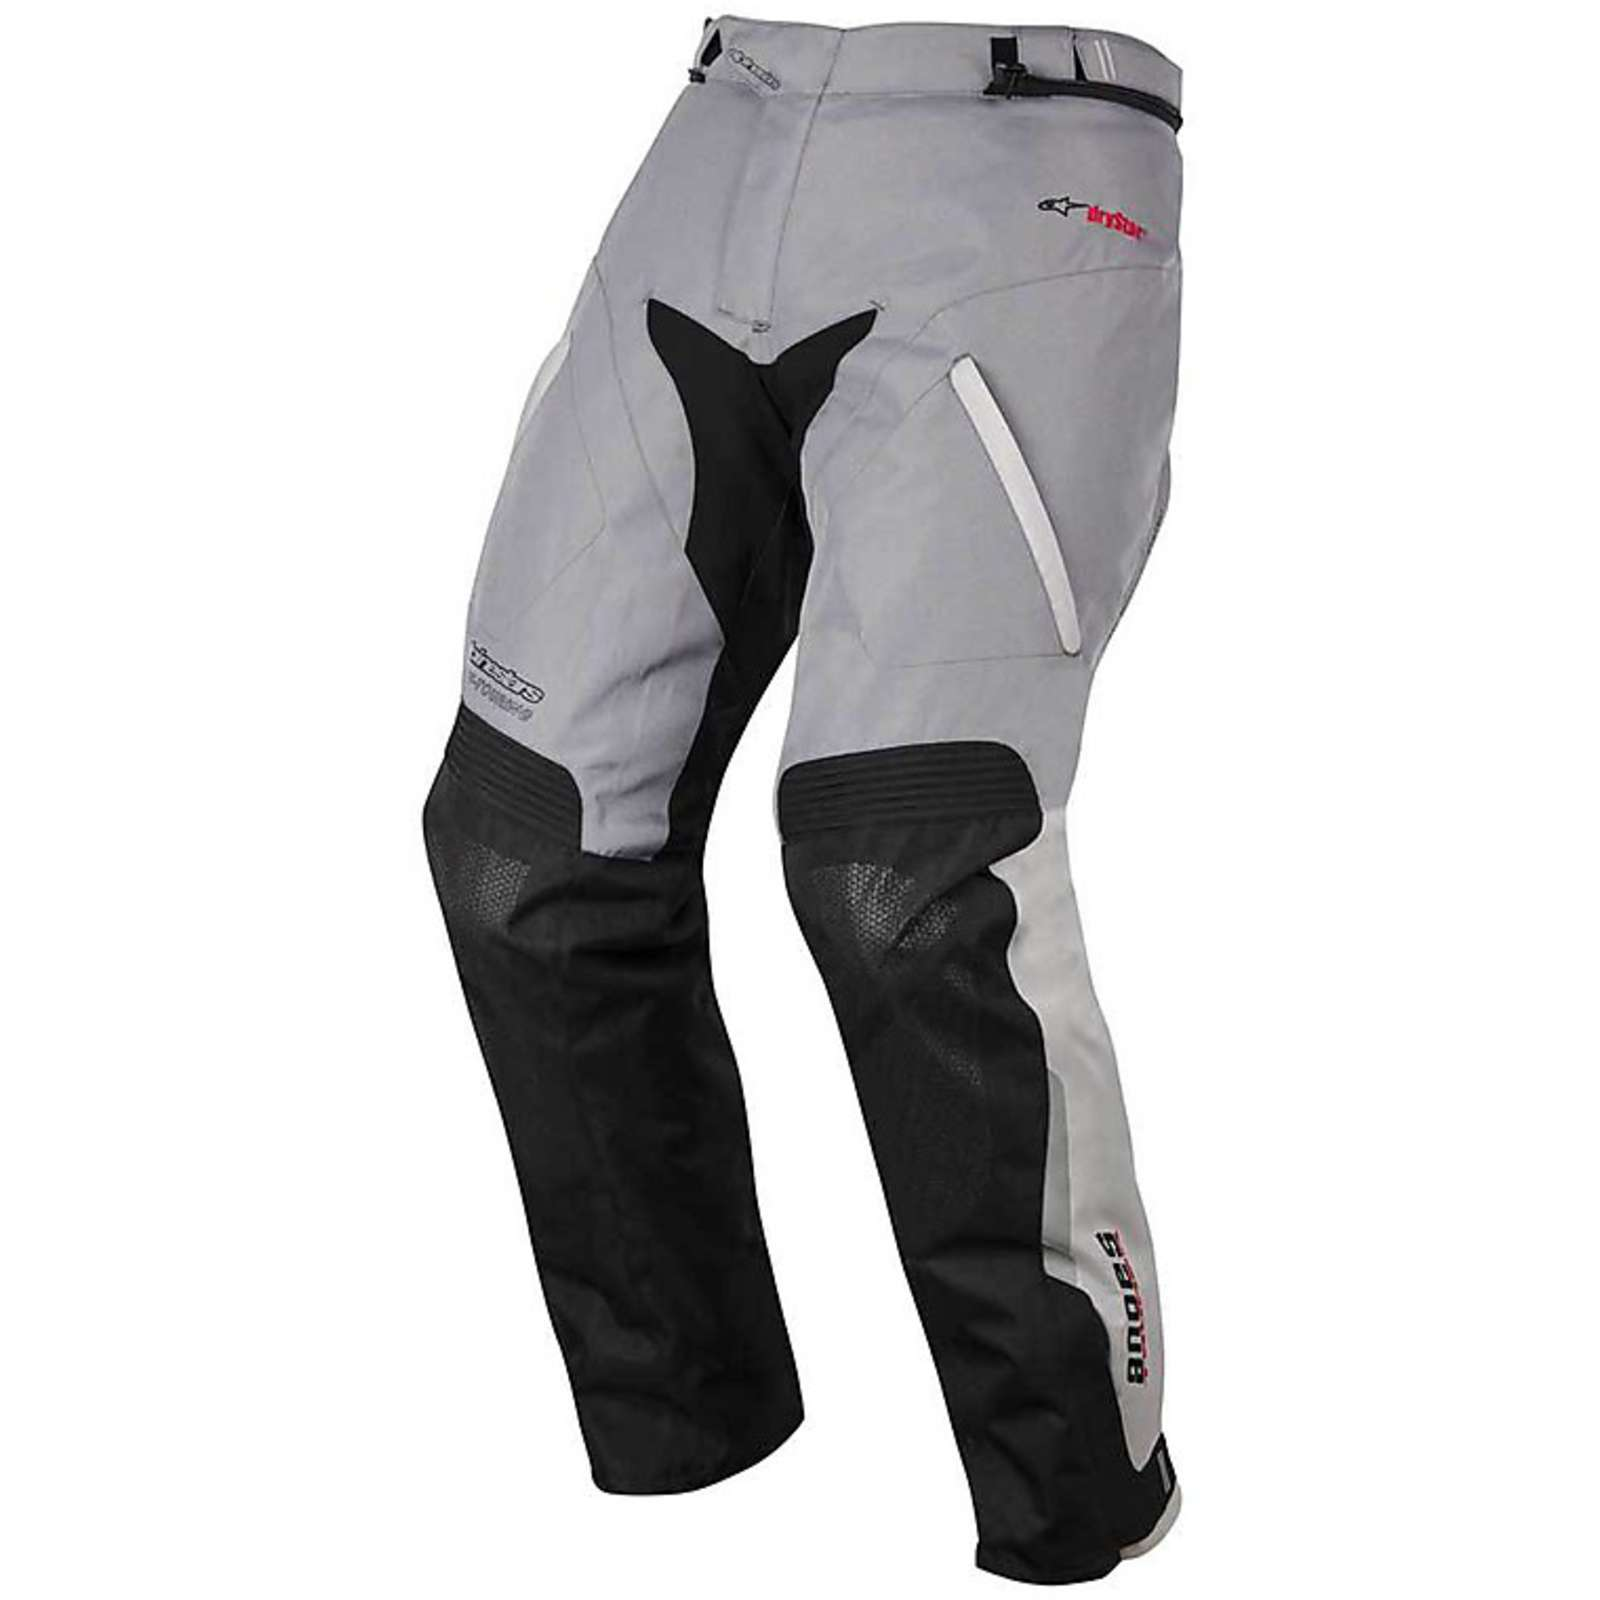 Outlet Andes Drystar Pants Trousers Waterproof Alpinestars